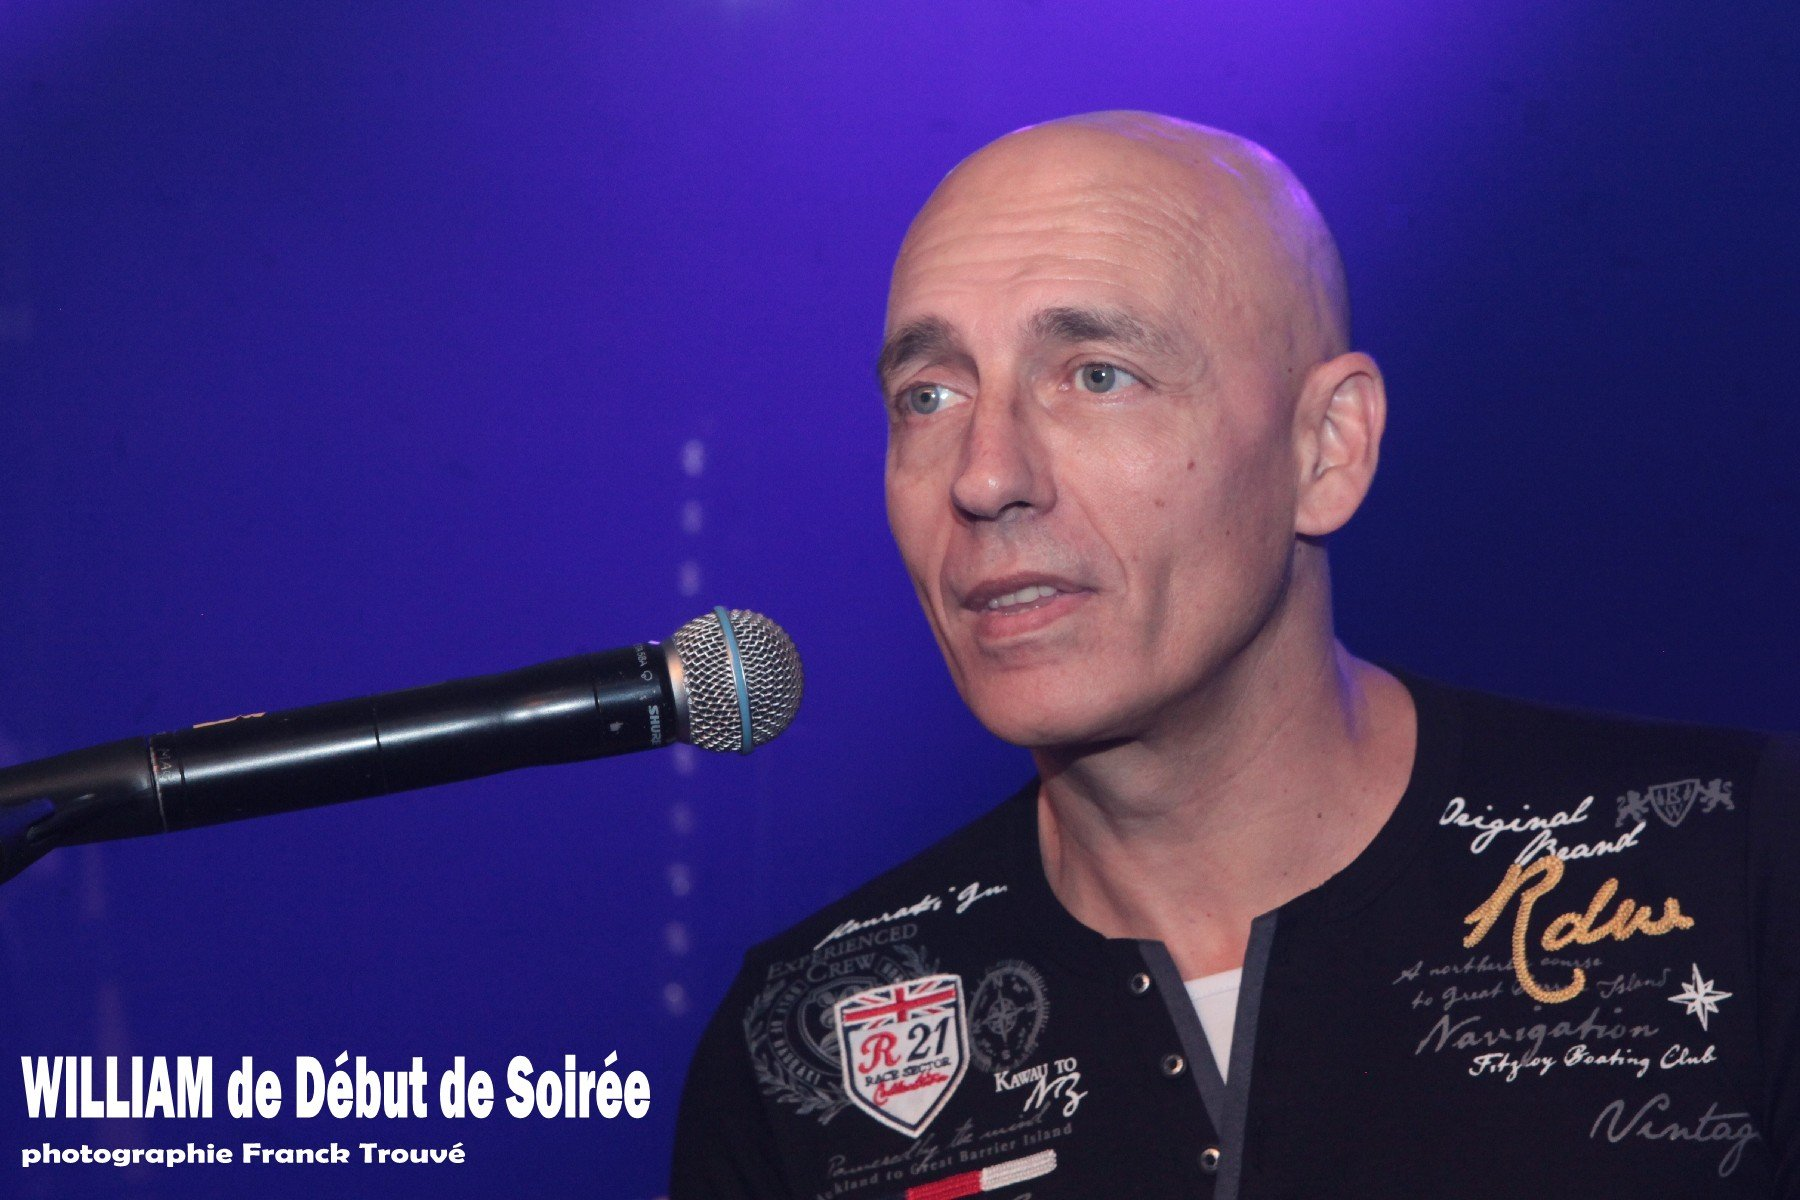 debut de soiree photo franck trouve